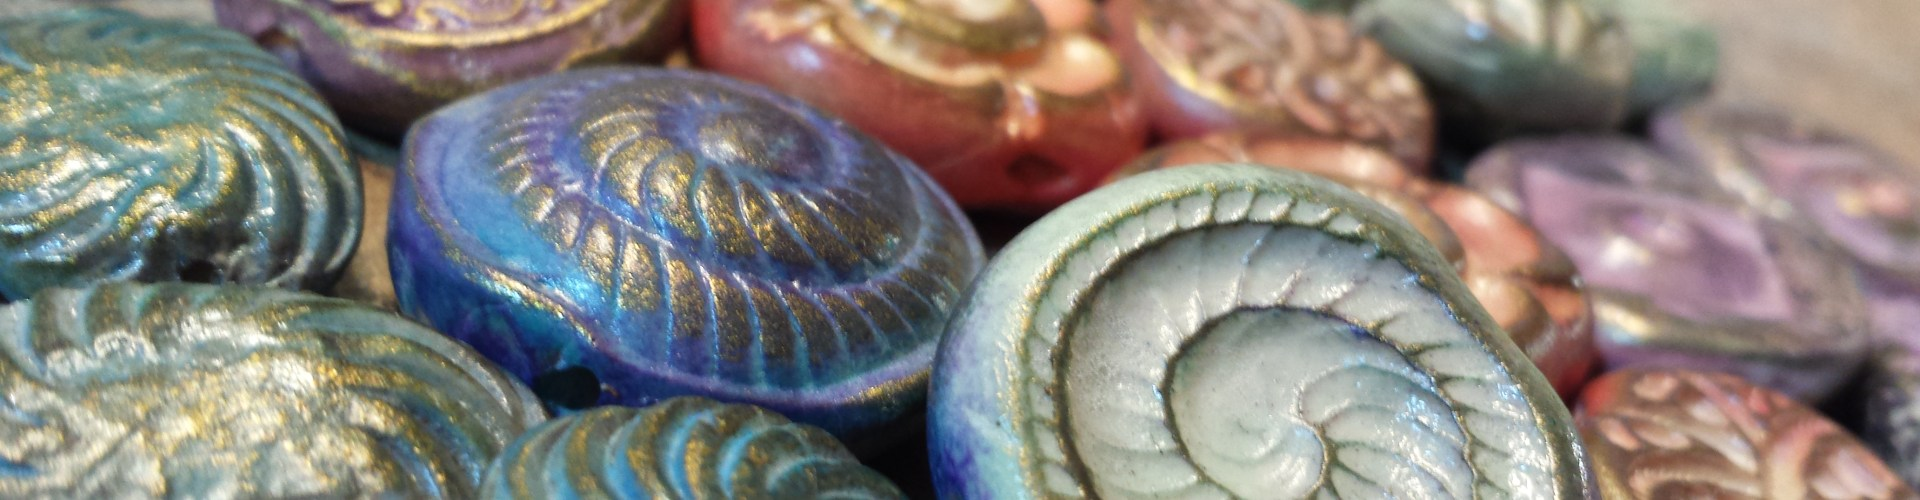 Making Rustic / Organic Polymer Clay Beads